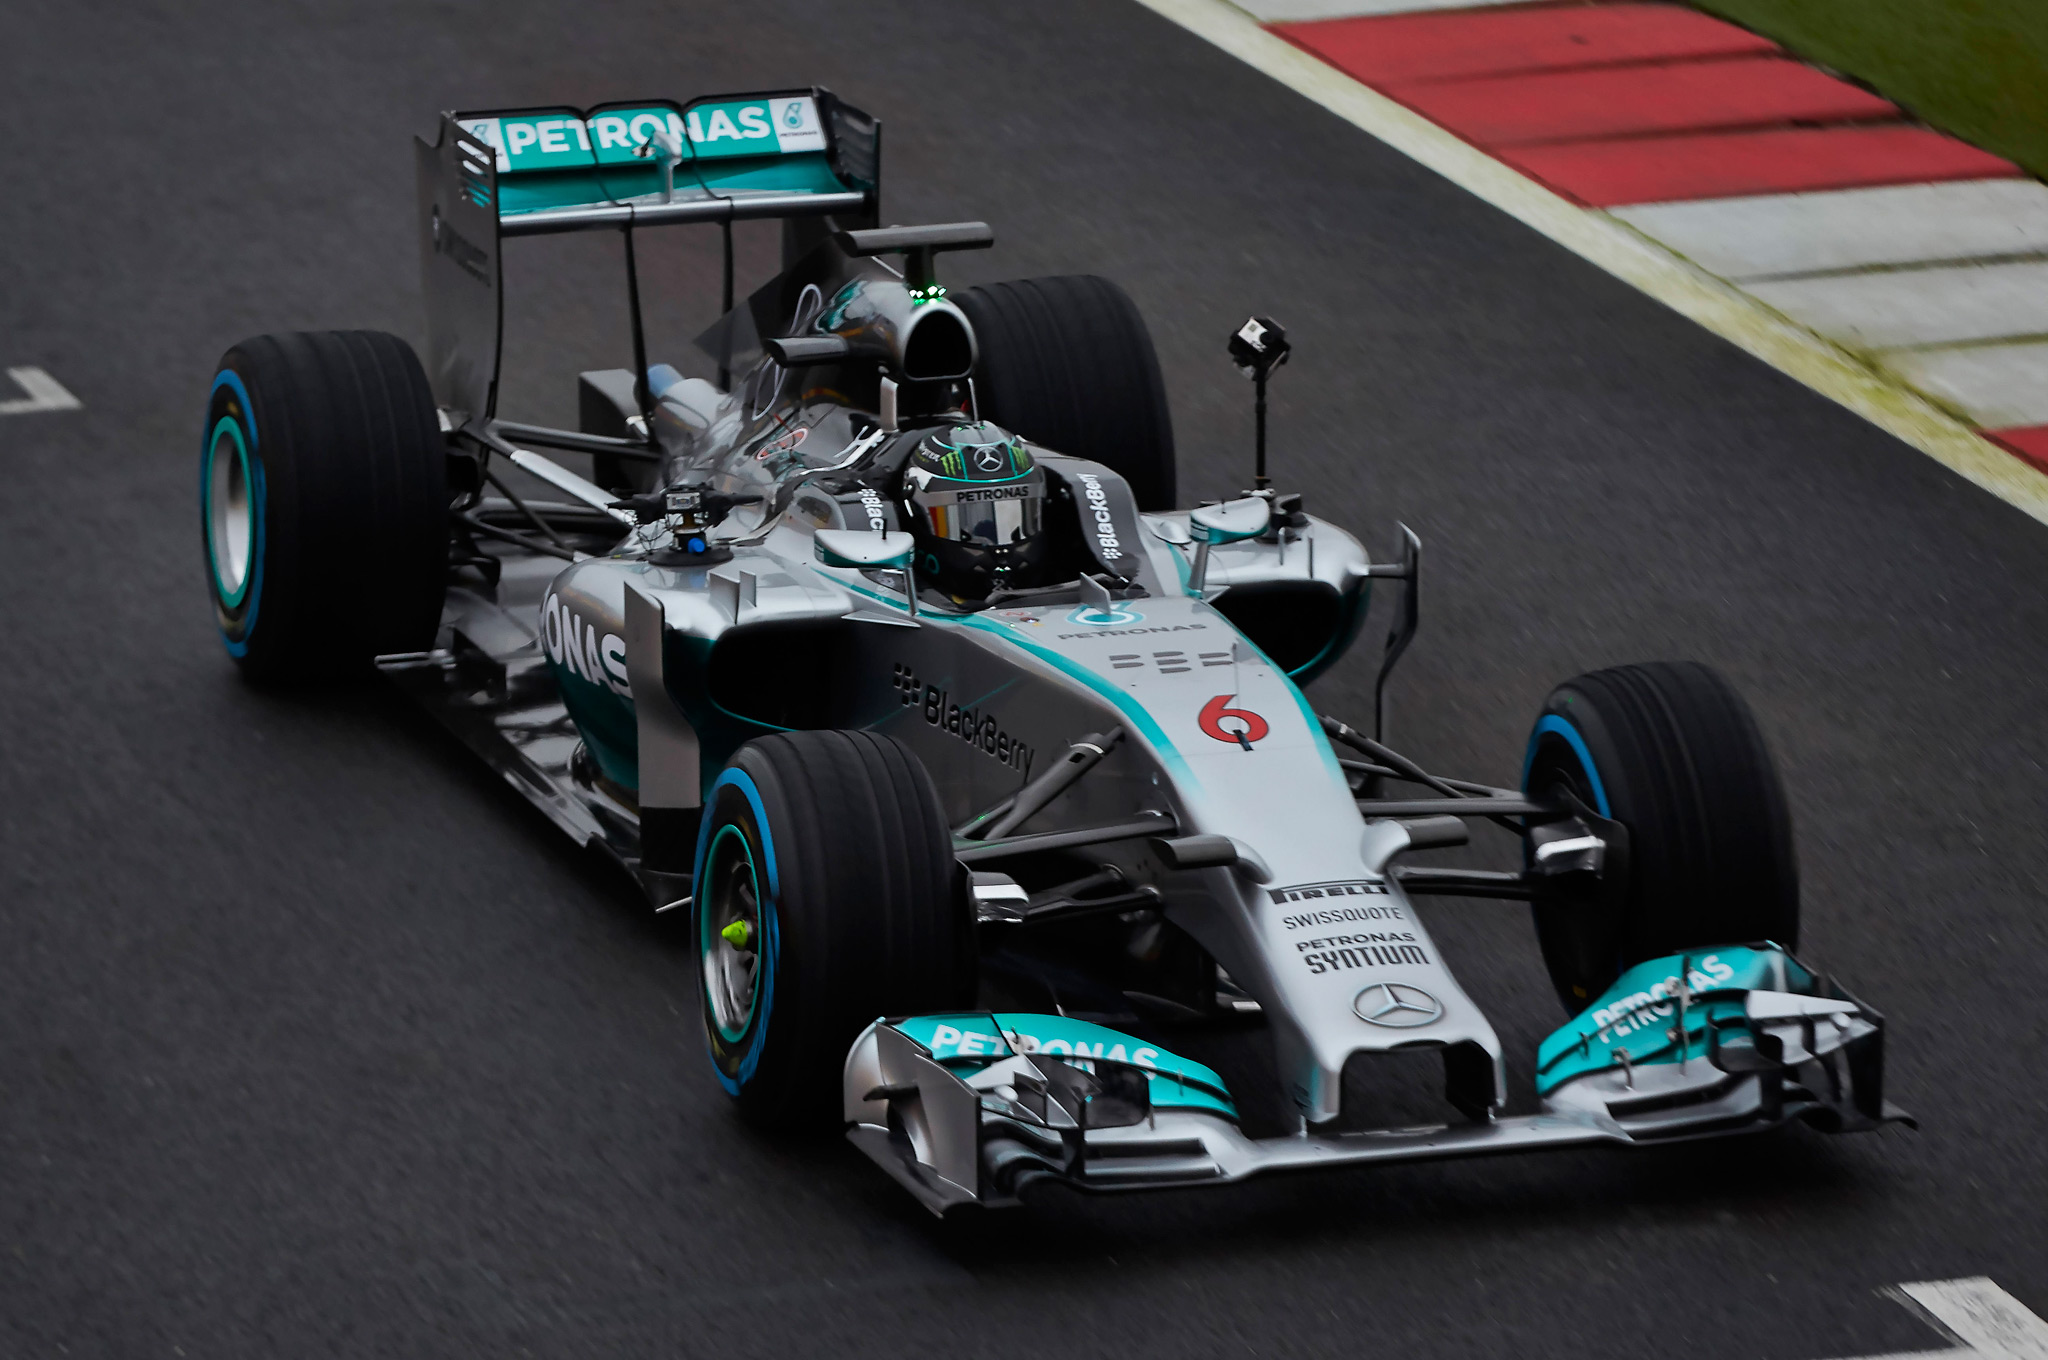 Mercedes 360 Degree Videos Give New Perspective On Formula 1 Motor